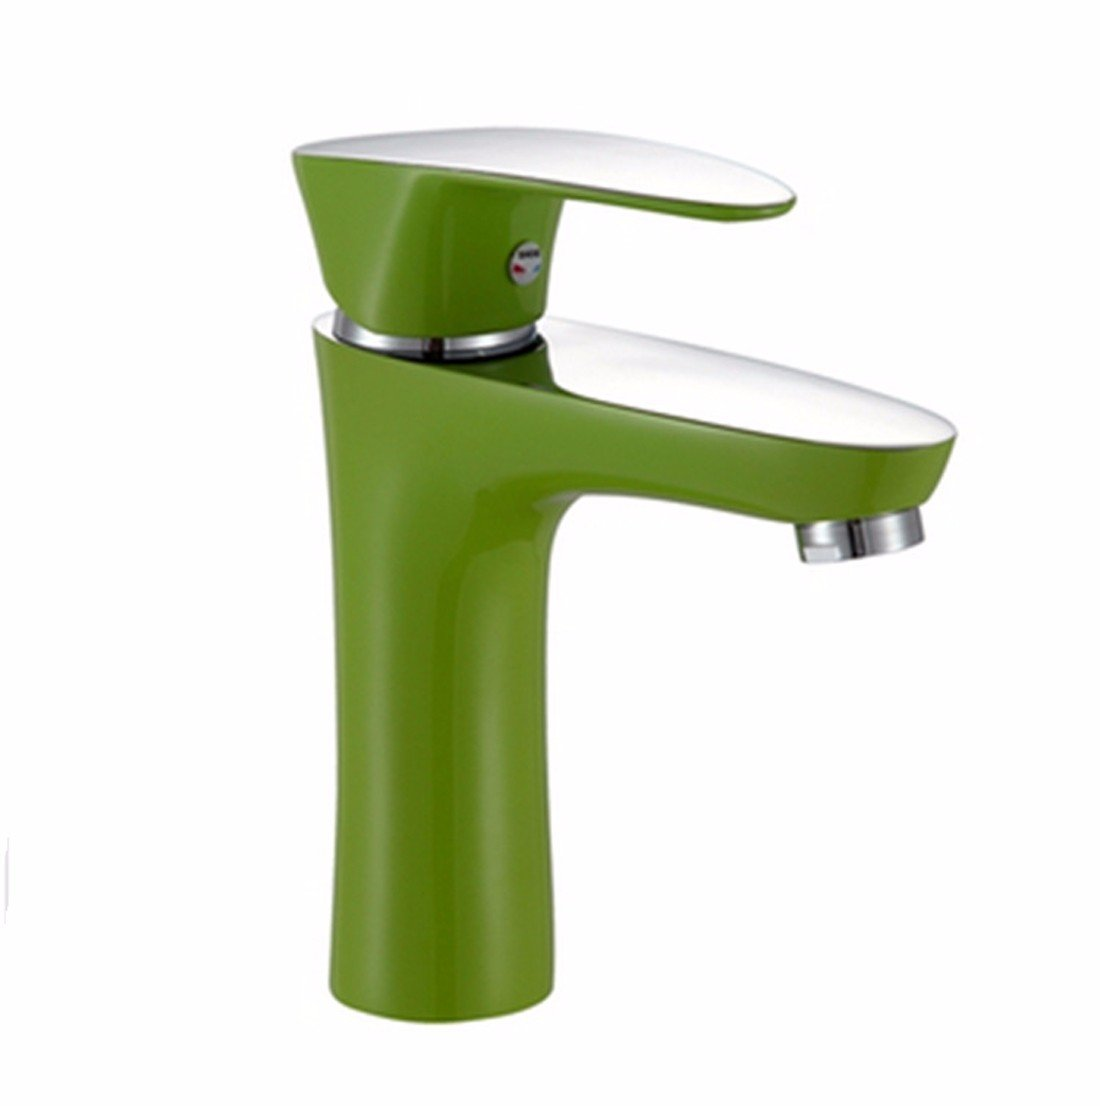 MDRW-Water wash basin faucet, faucet color by MDRW